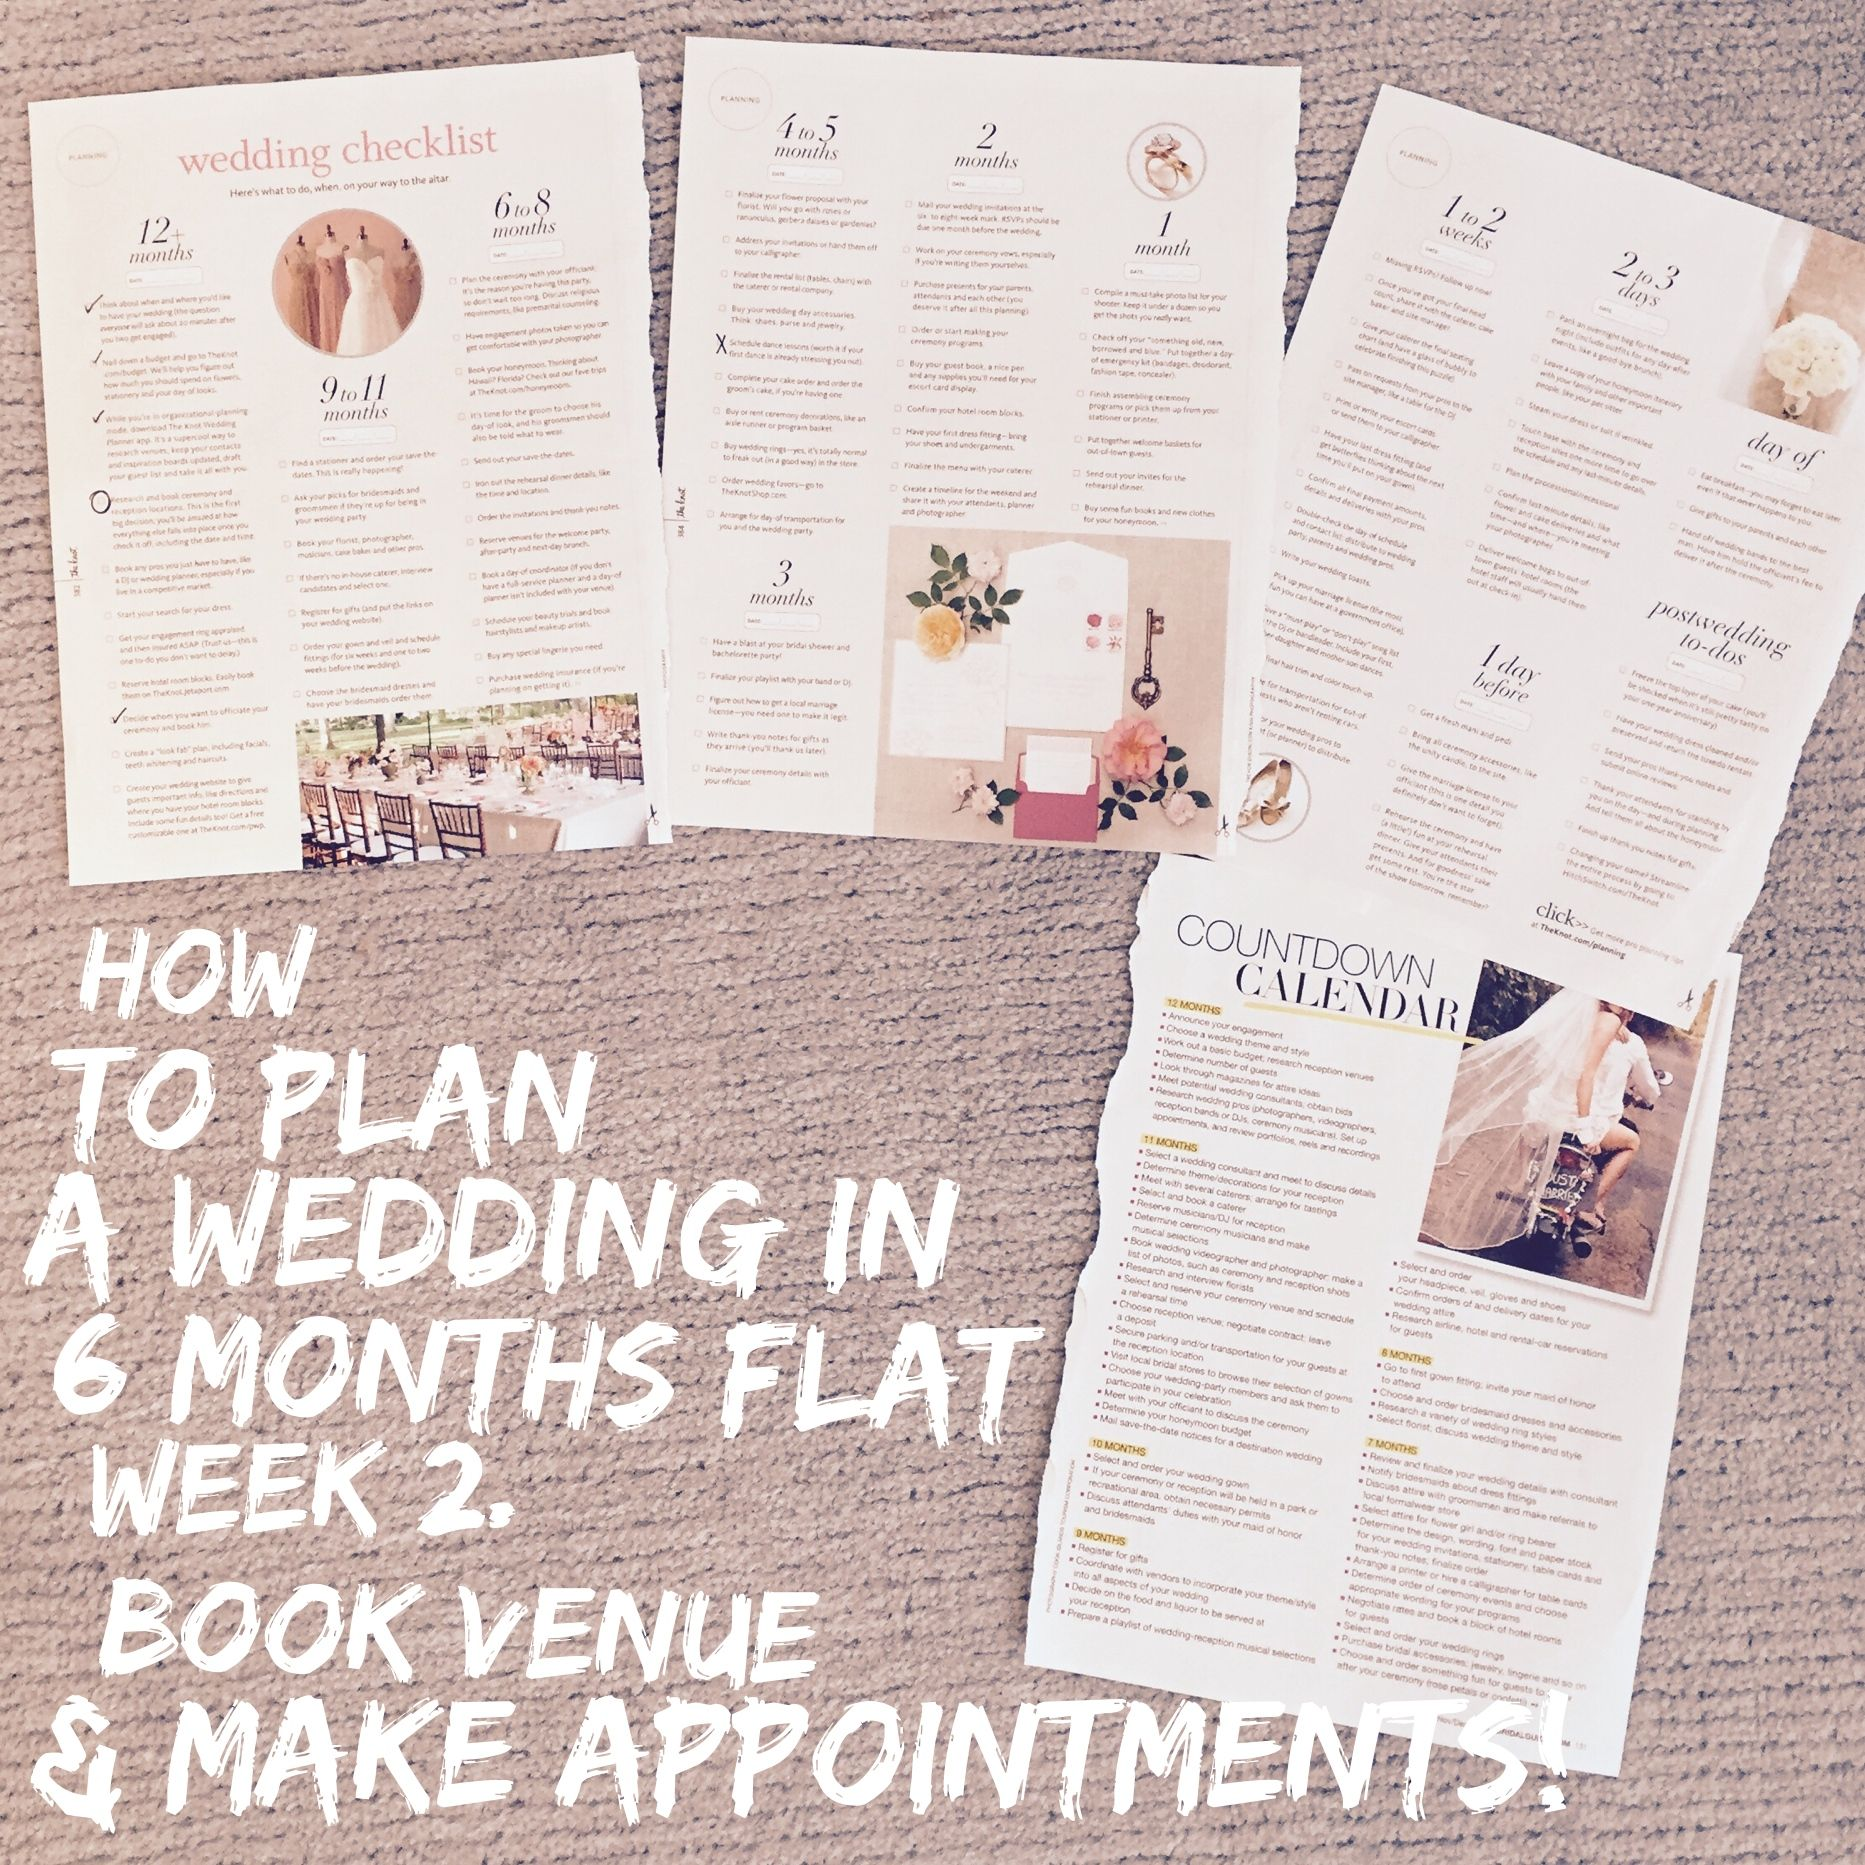 How to plan a wedding in  months flat week   Traditional wedding